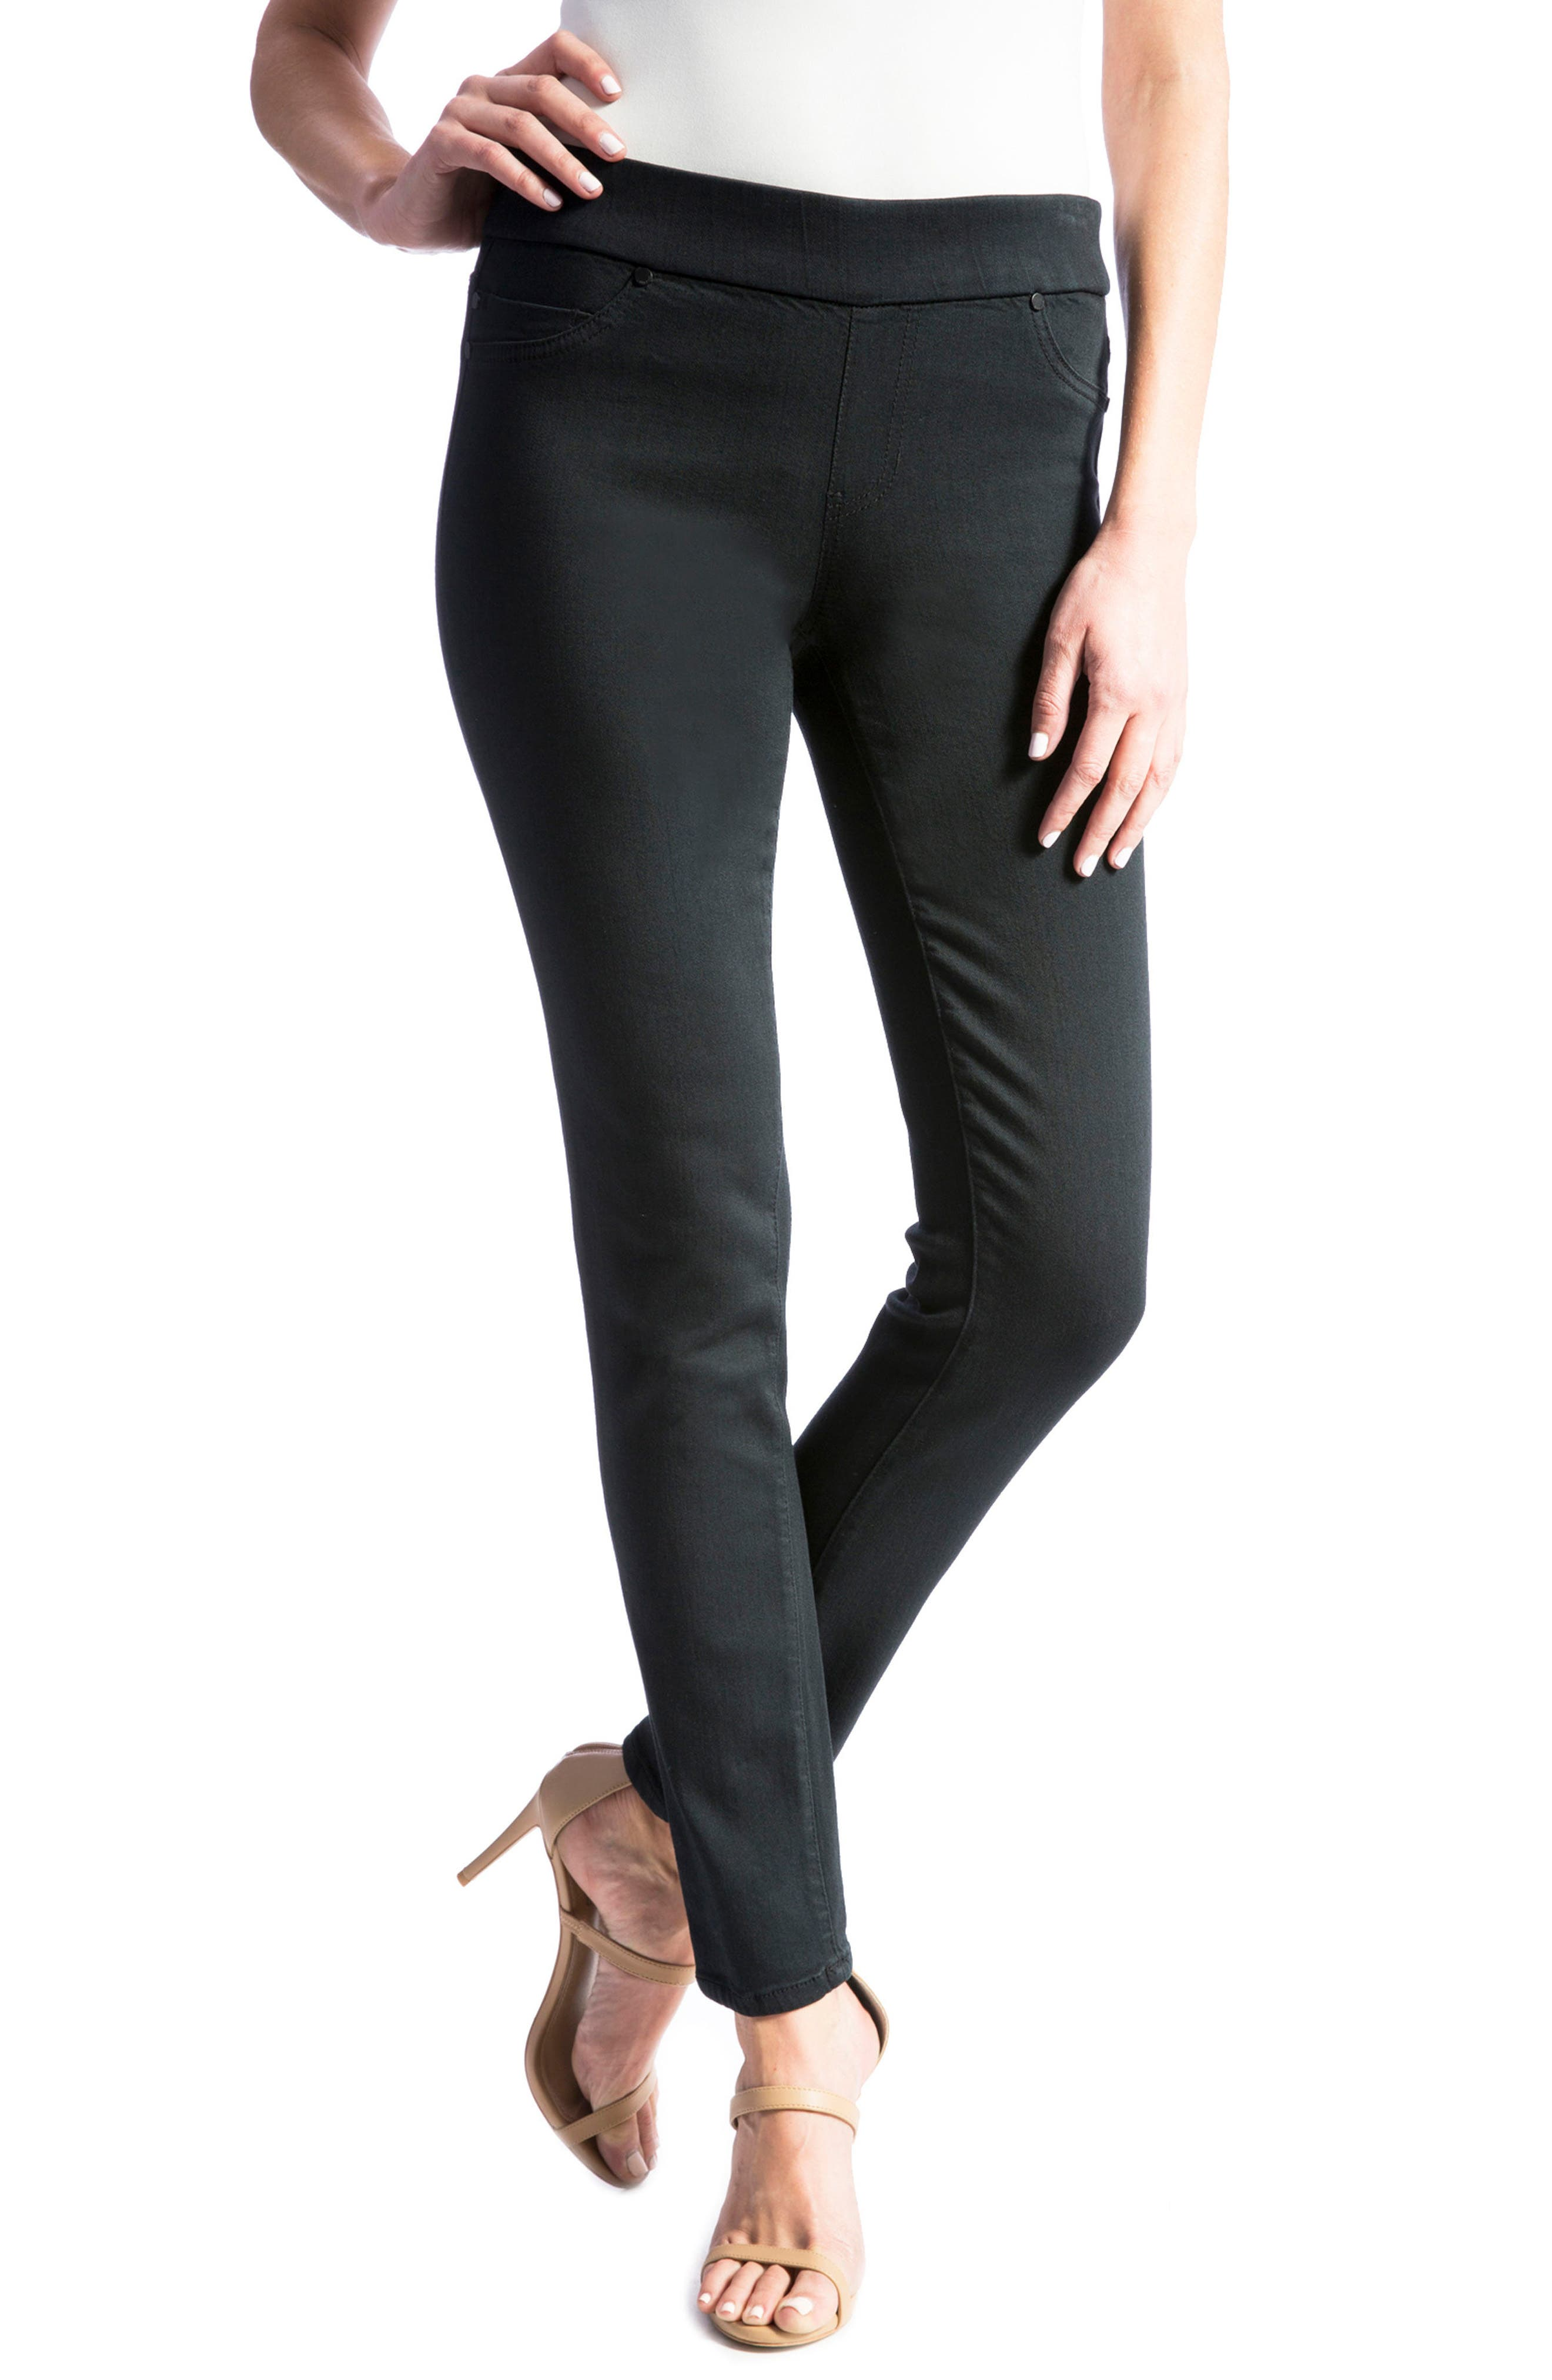 Liverpool Jeans Company Sienna Mid Rise Soft Stretch Denim Leggings  (Indigo Overdye Black)